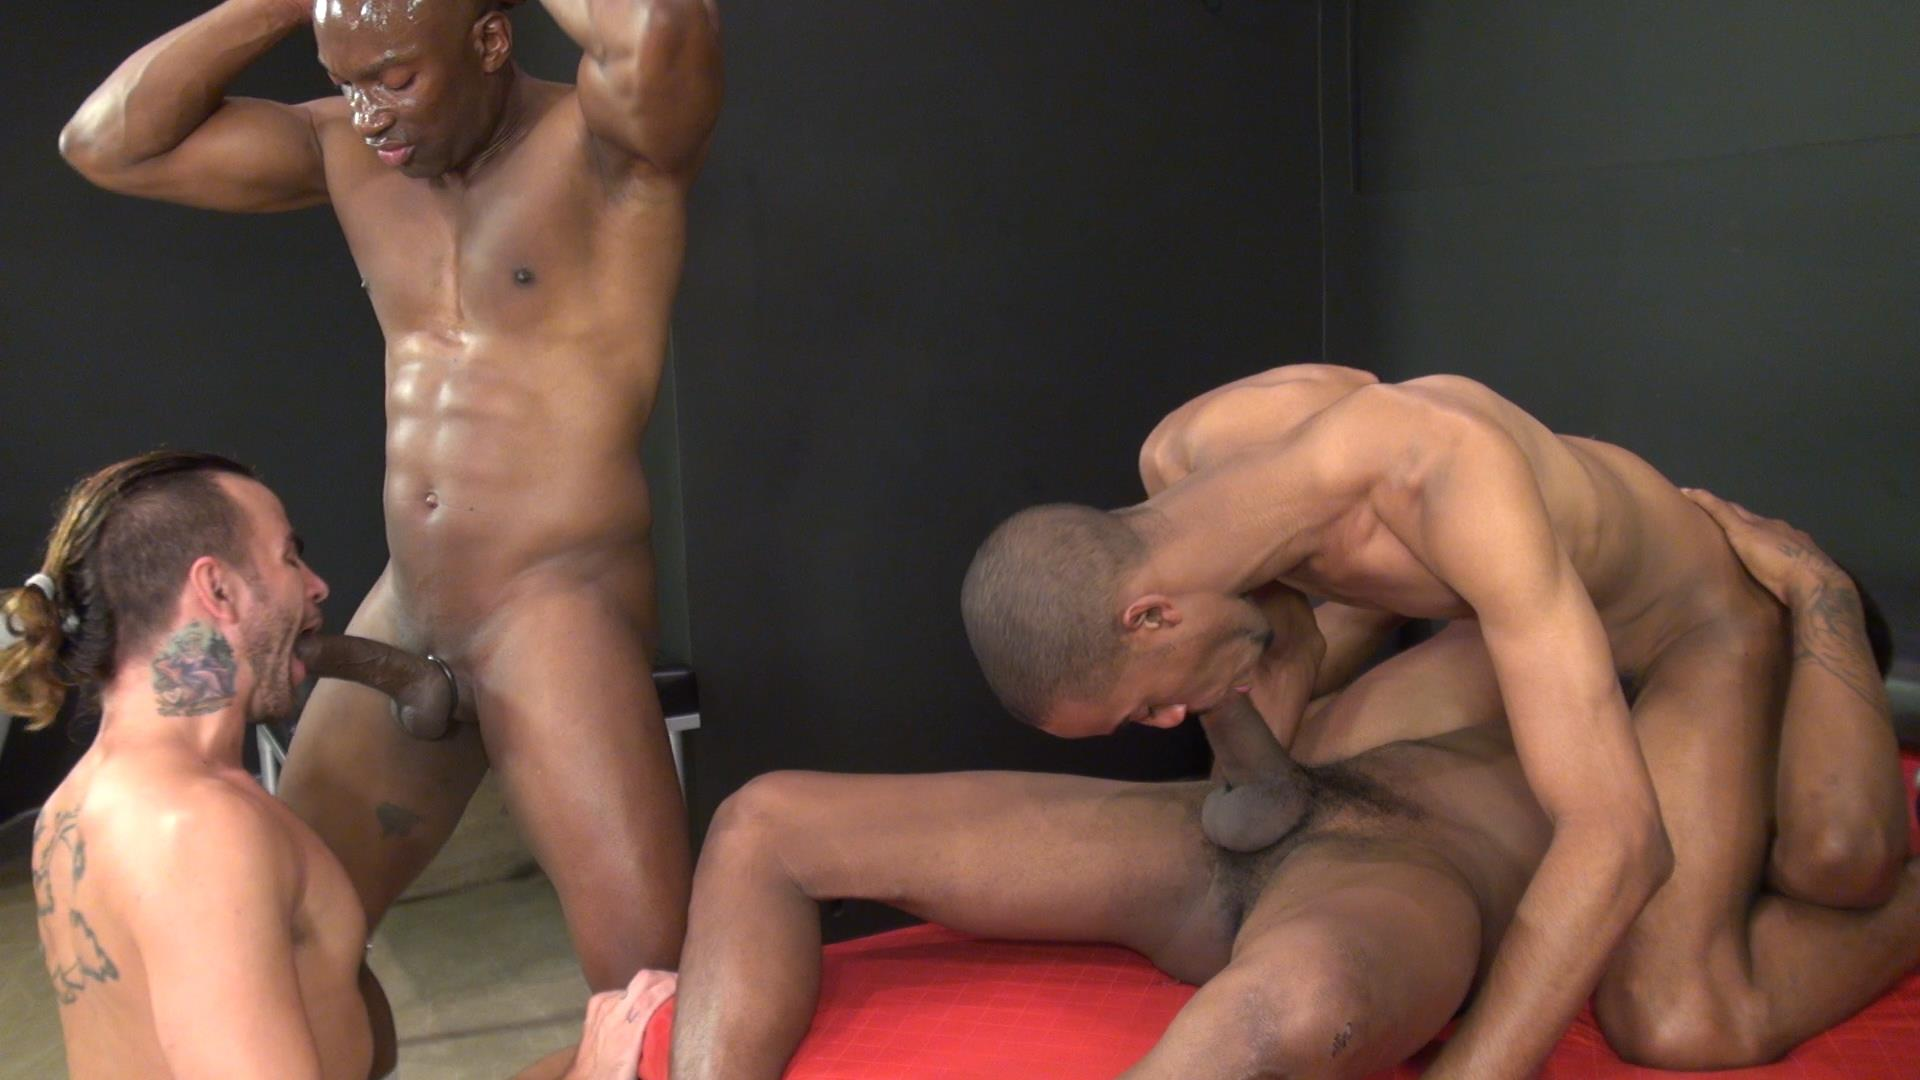 Raw-and-Rough-Champ-Robinson-Lukas-Cipriani-Knockout-Tigger-Redd-BBBH-Amateur-Gay-Porn-16 White Boy Gets A Breeding By Three Big Black Dicks